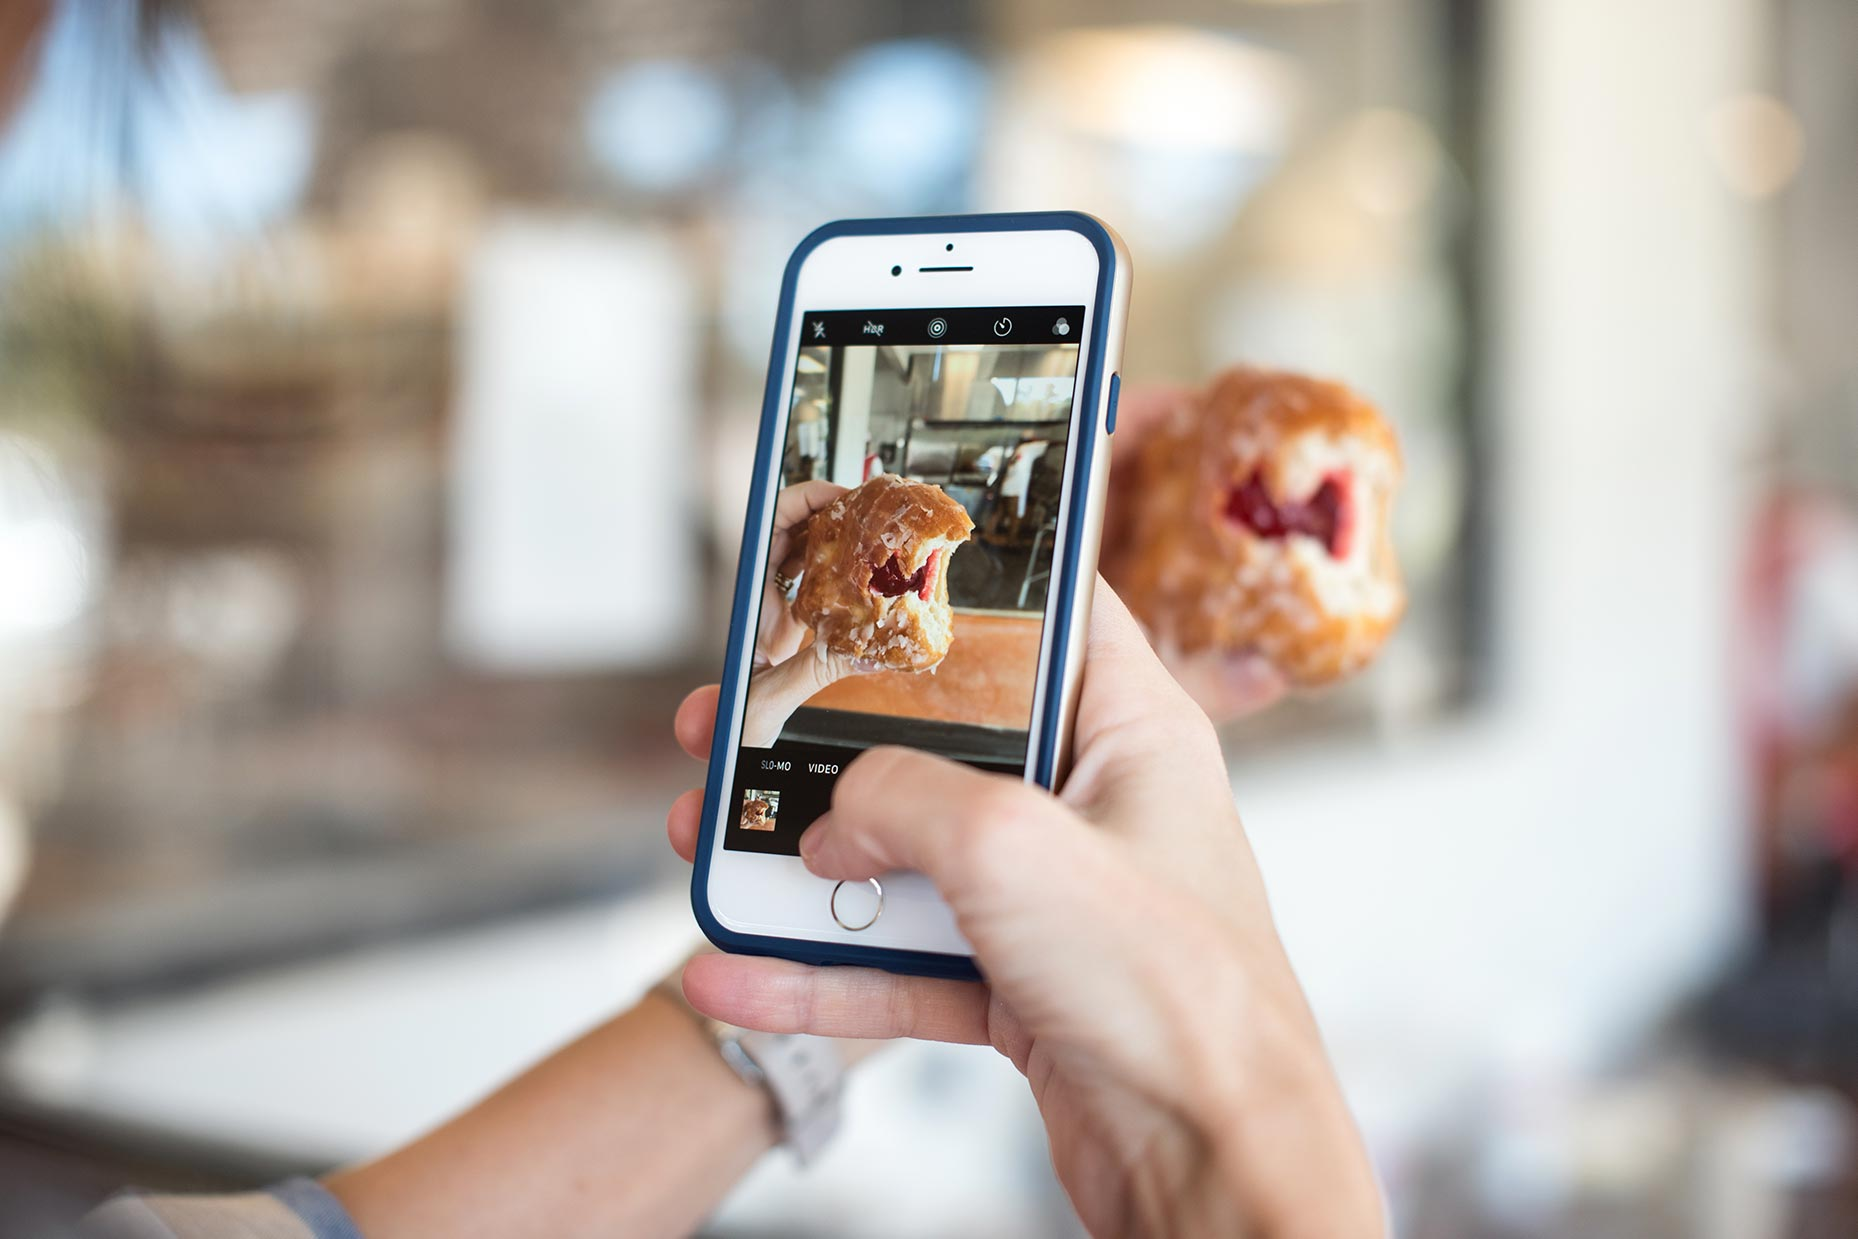 Snapping photo of food